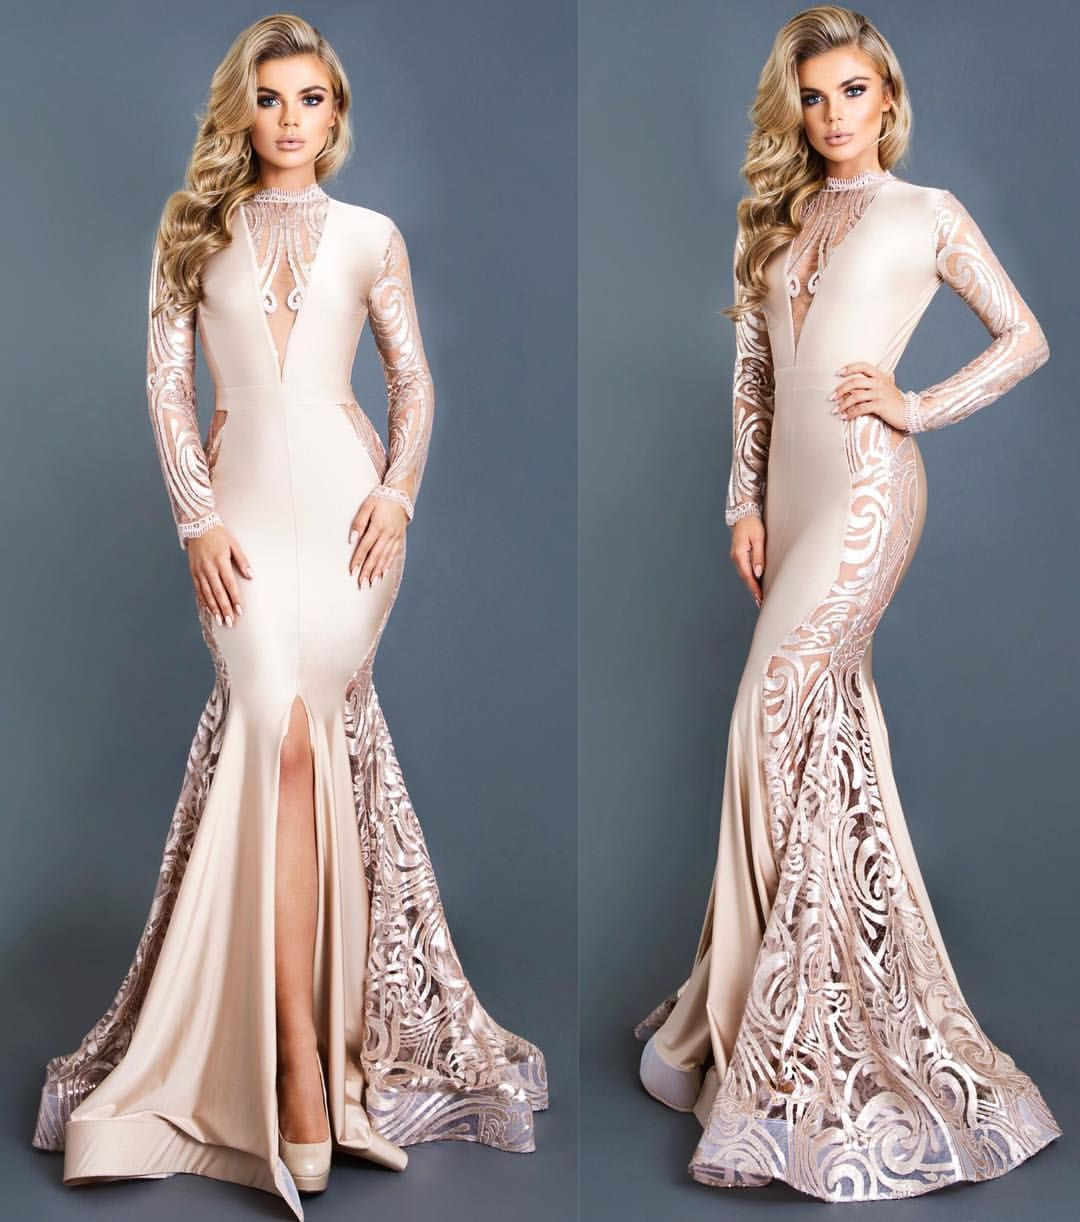 Michael Costello Nude Mermaid Evening Occasion Dresses with Long Sleeve  2018 Lace Stain Sexy Split Mermaid Prom Formal Gowns Overskirt Evening Dress  Yousef ... e8aa5b4ee